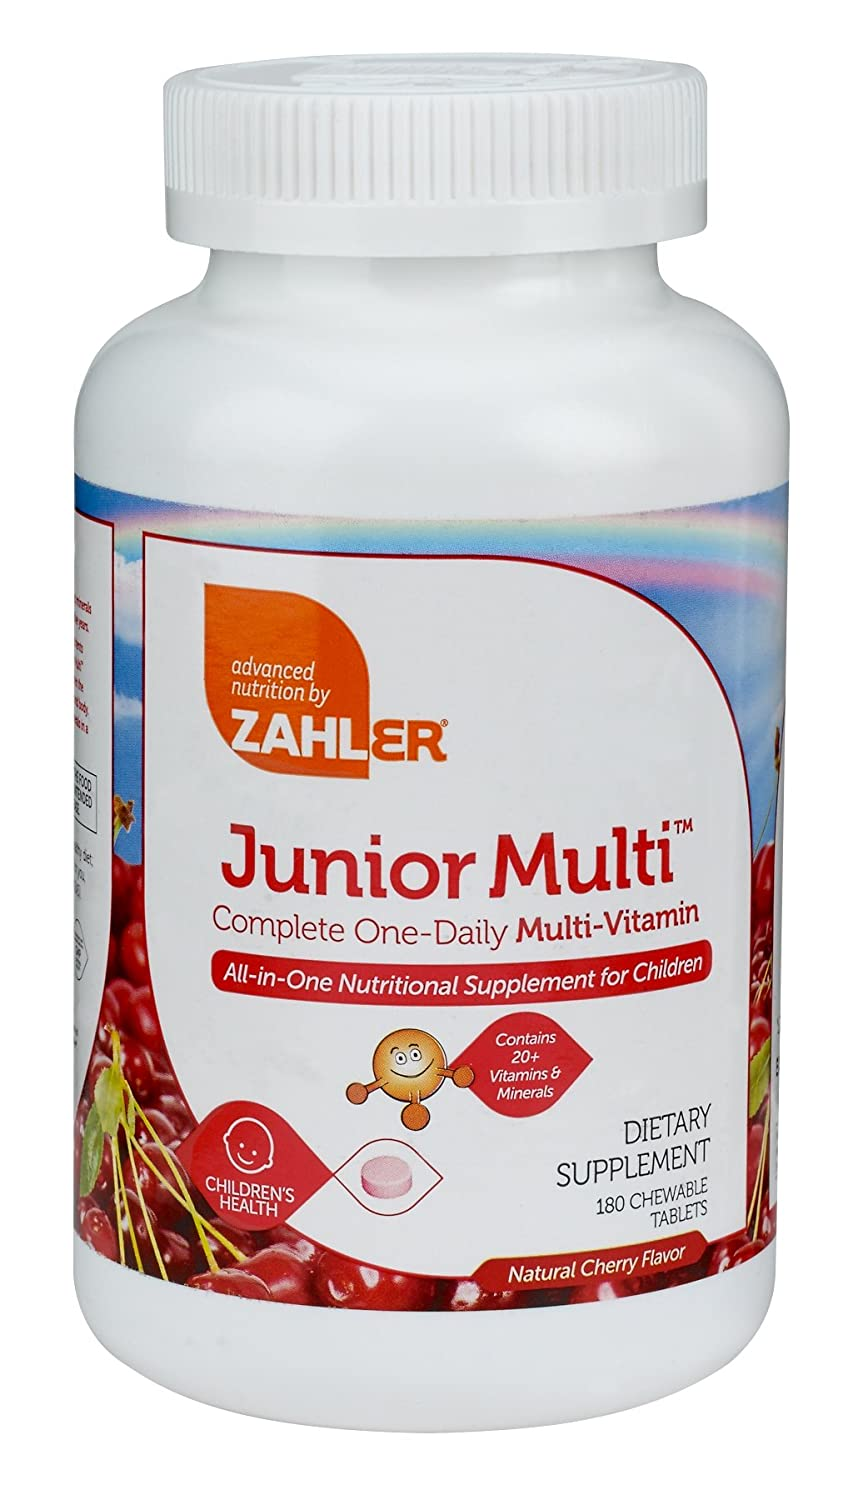 Zahler Junior Multi, Chewable Multivitamin for Kids, Great Tasting Kids Mutlivitamin, Childrens Cherry Chewable Tablets, All Natural Color and Flavor, 180 Chewable Tablets